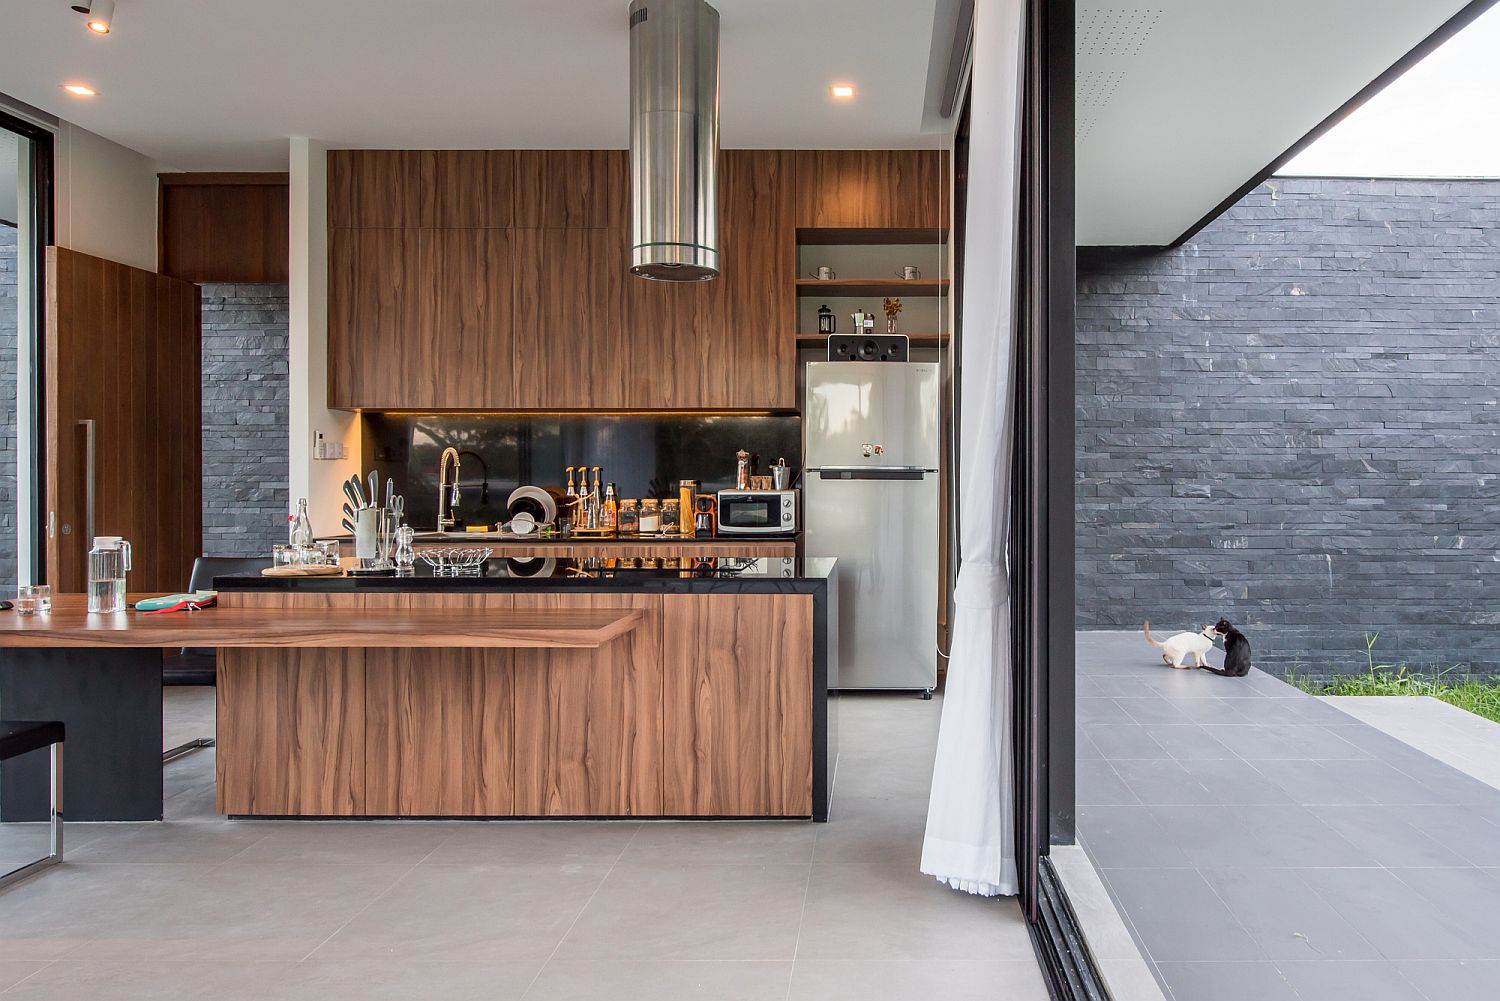 Dark elements combined with wood inside the kitchen